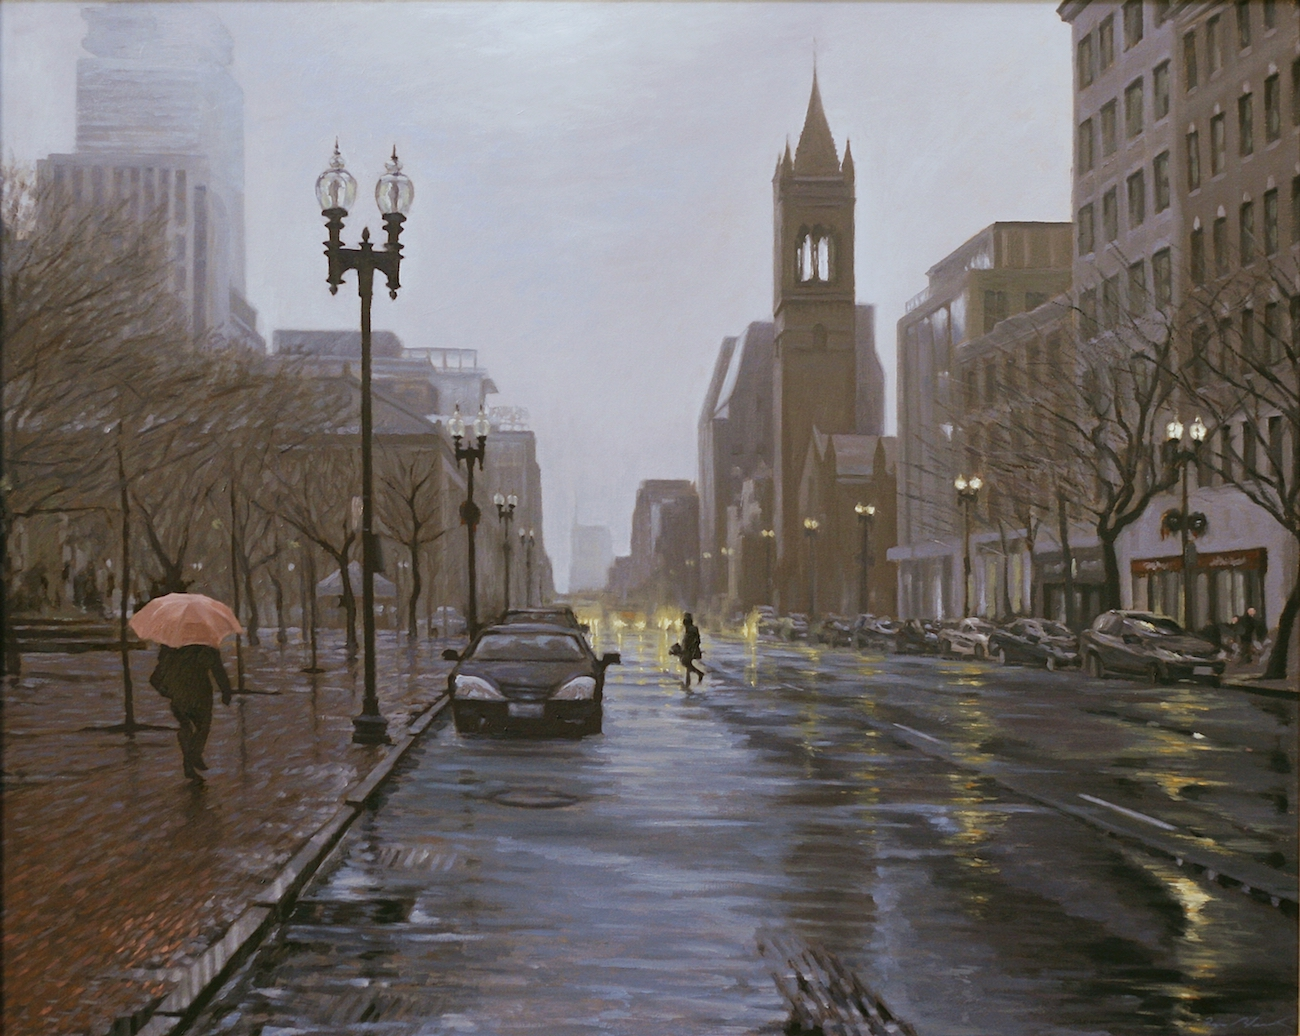 Copley Square by Ryan Black